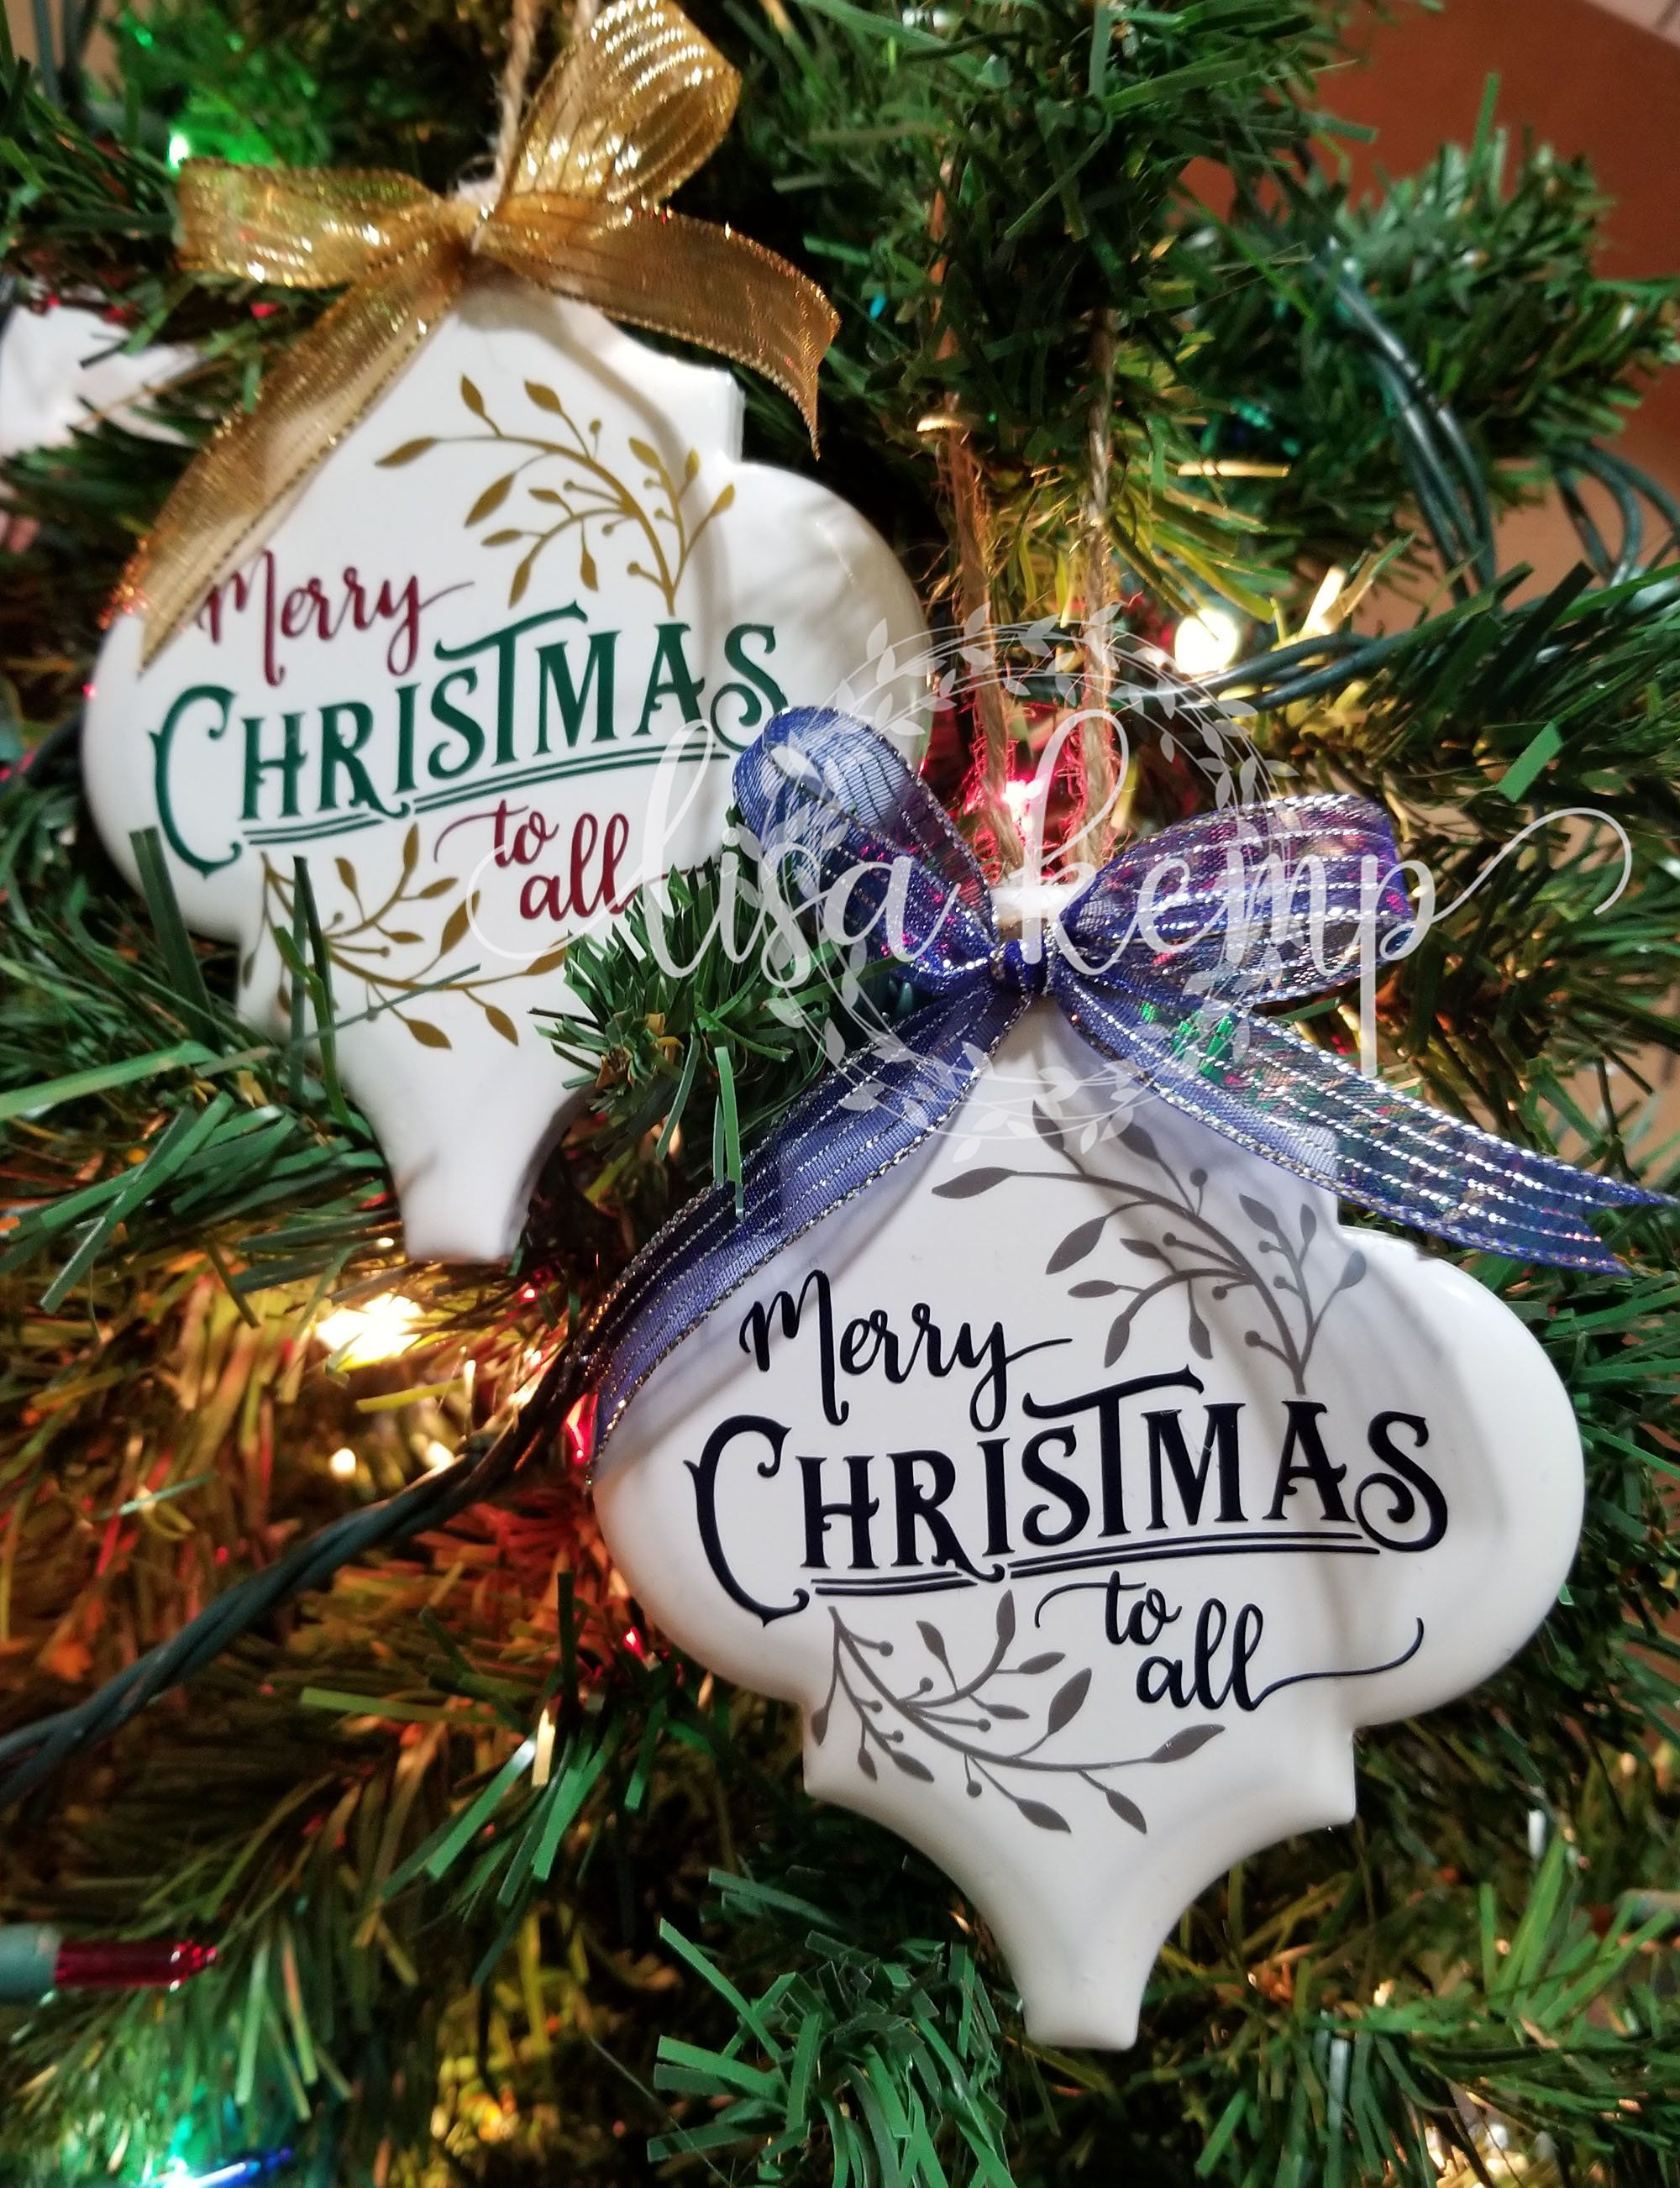 Merry Christmas To All Ceramic Lantern Tile Ornament Etsy Christmas Ornaments Homemade Christmas Ornament Crafts Candy Christmas Decorations